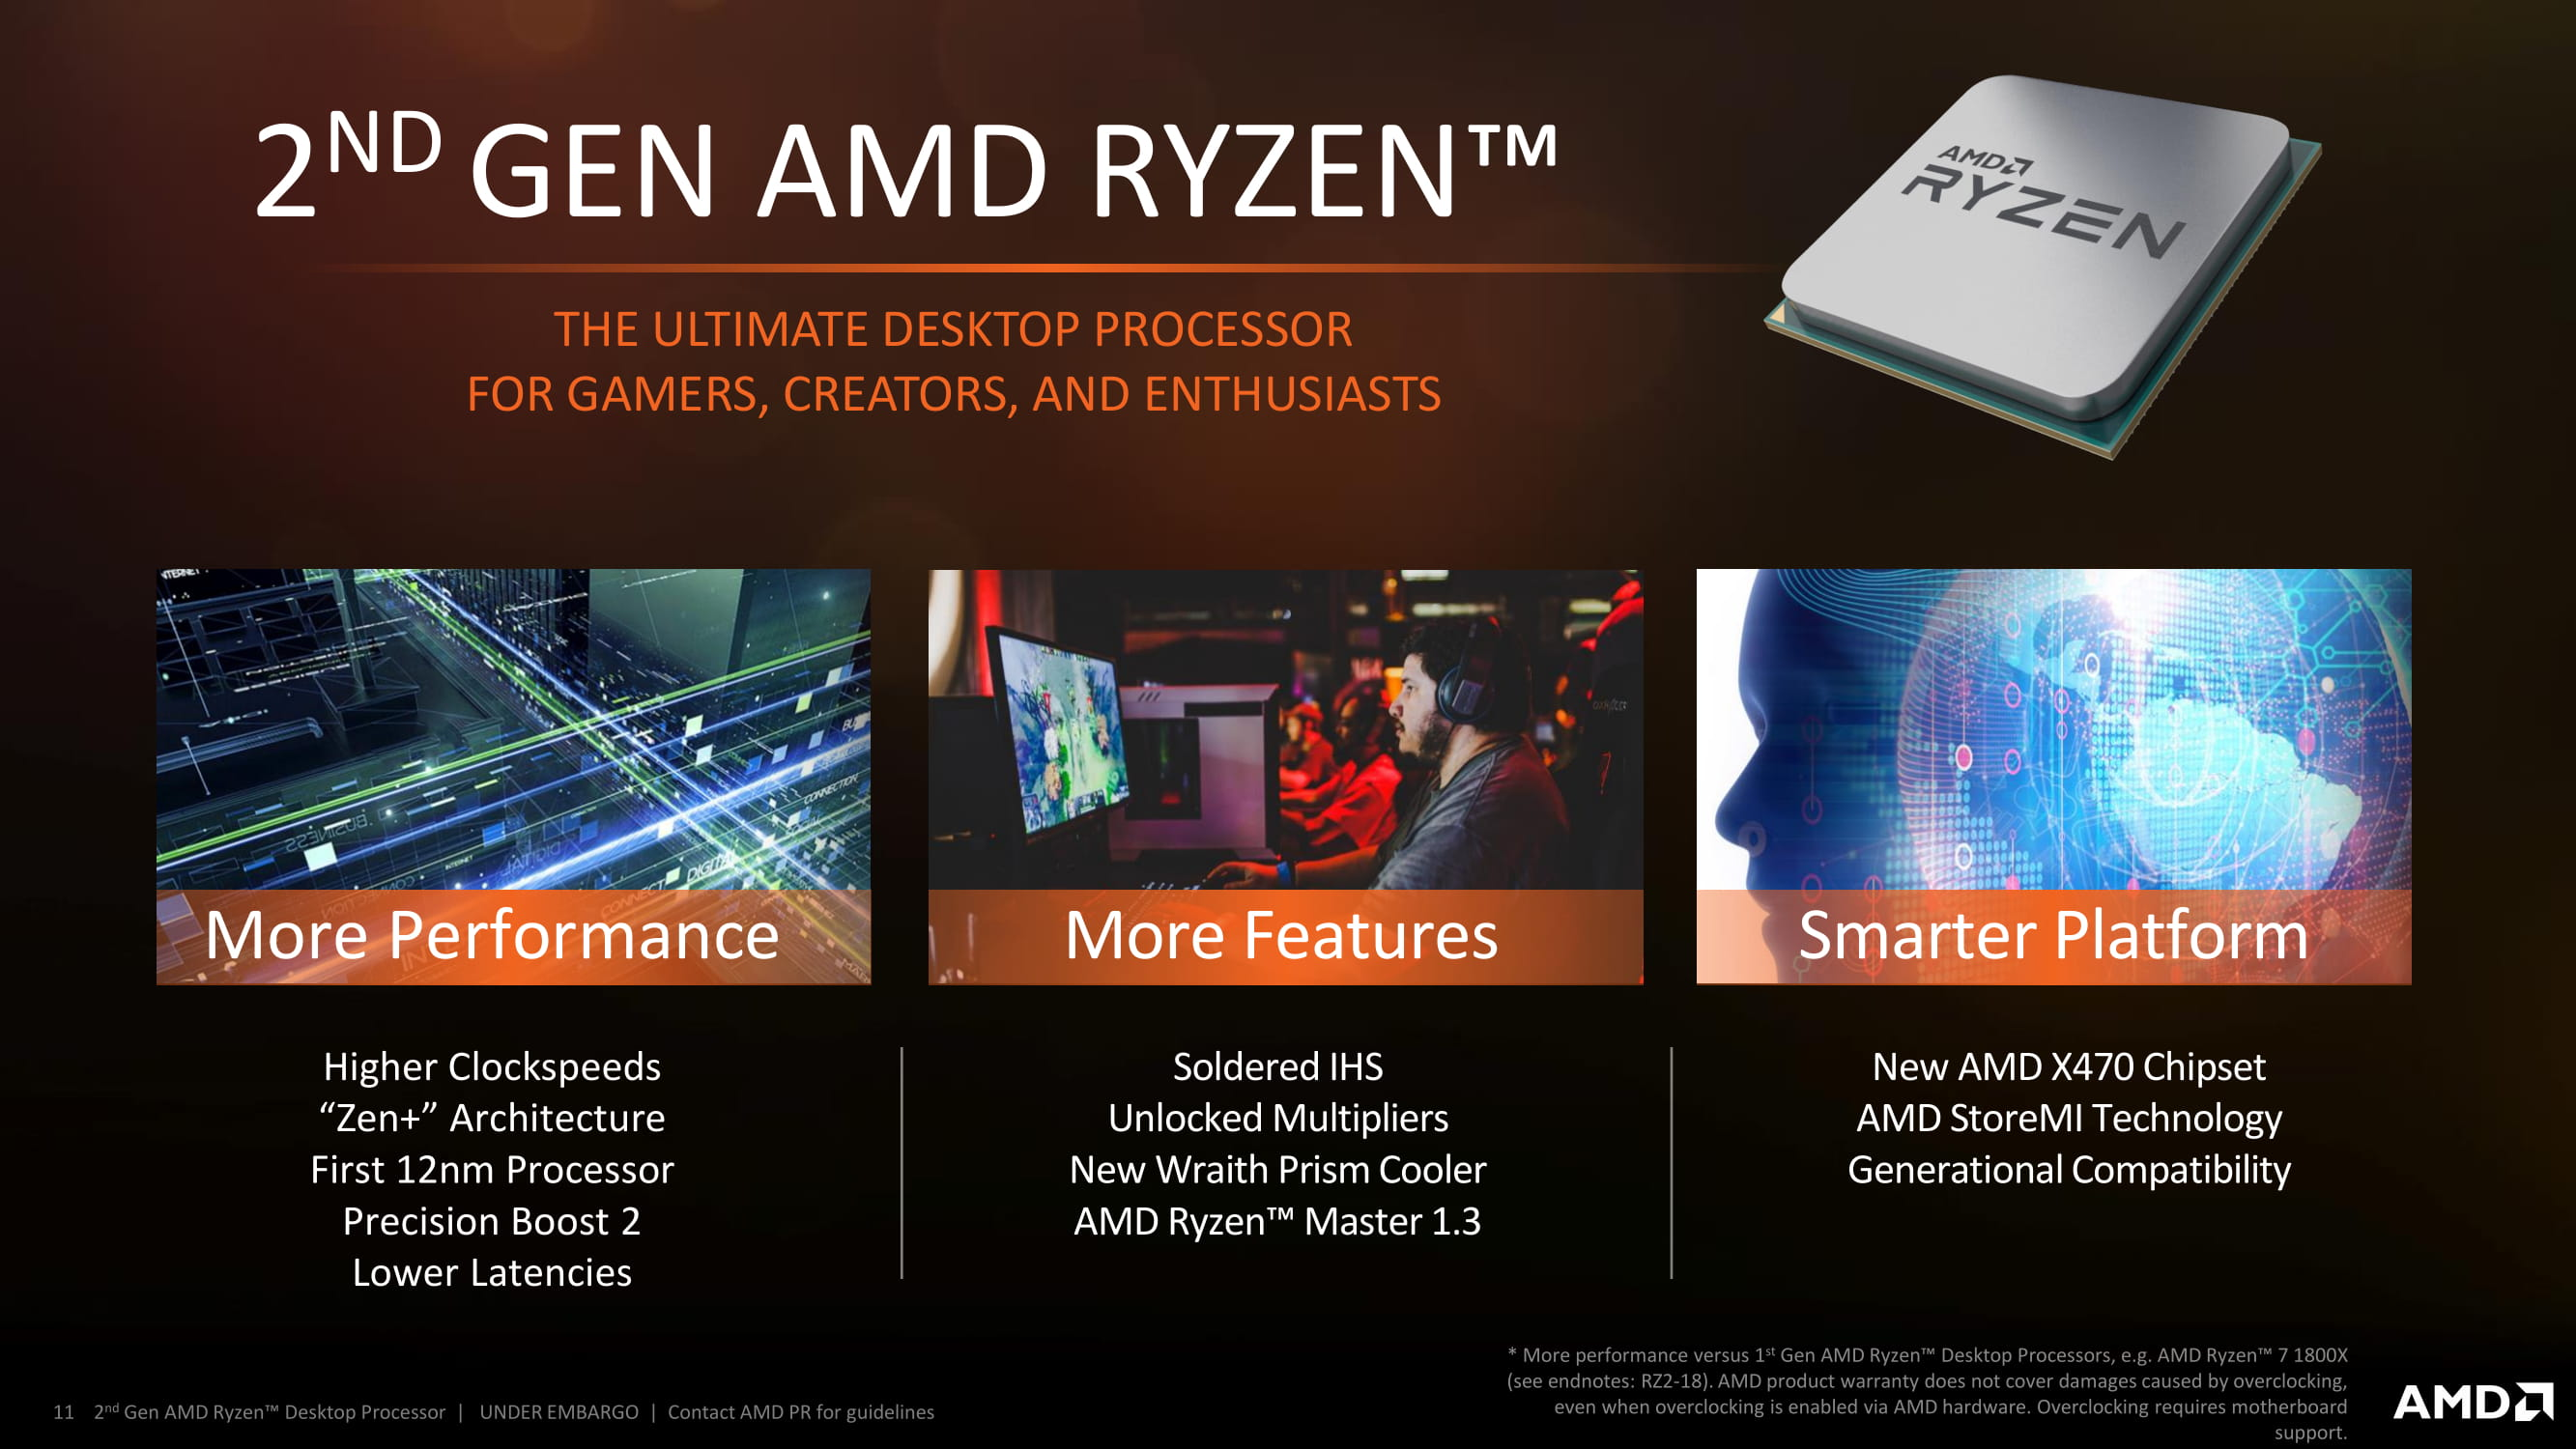 2nd Gen AMD Ryzen Desktop Processor-2-11.jpg